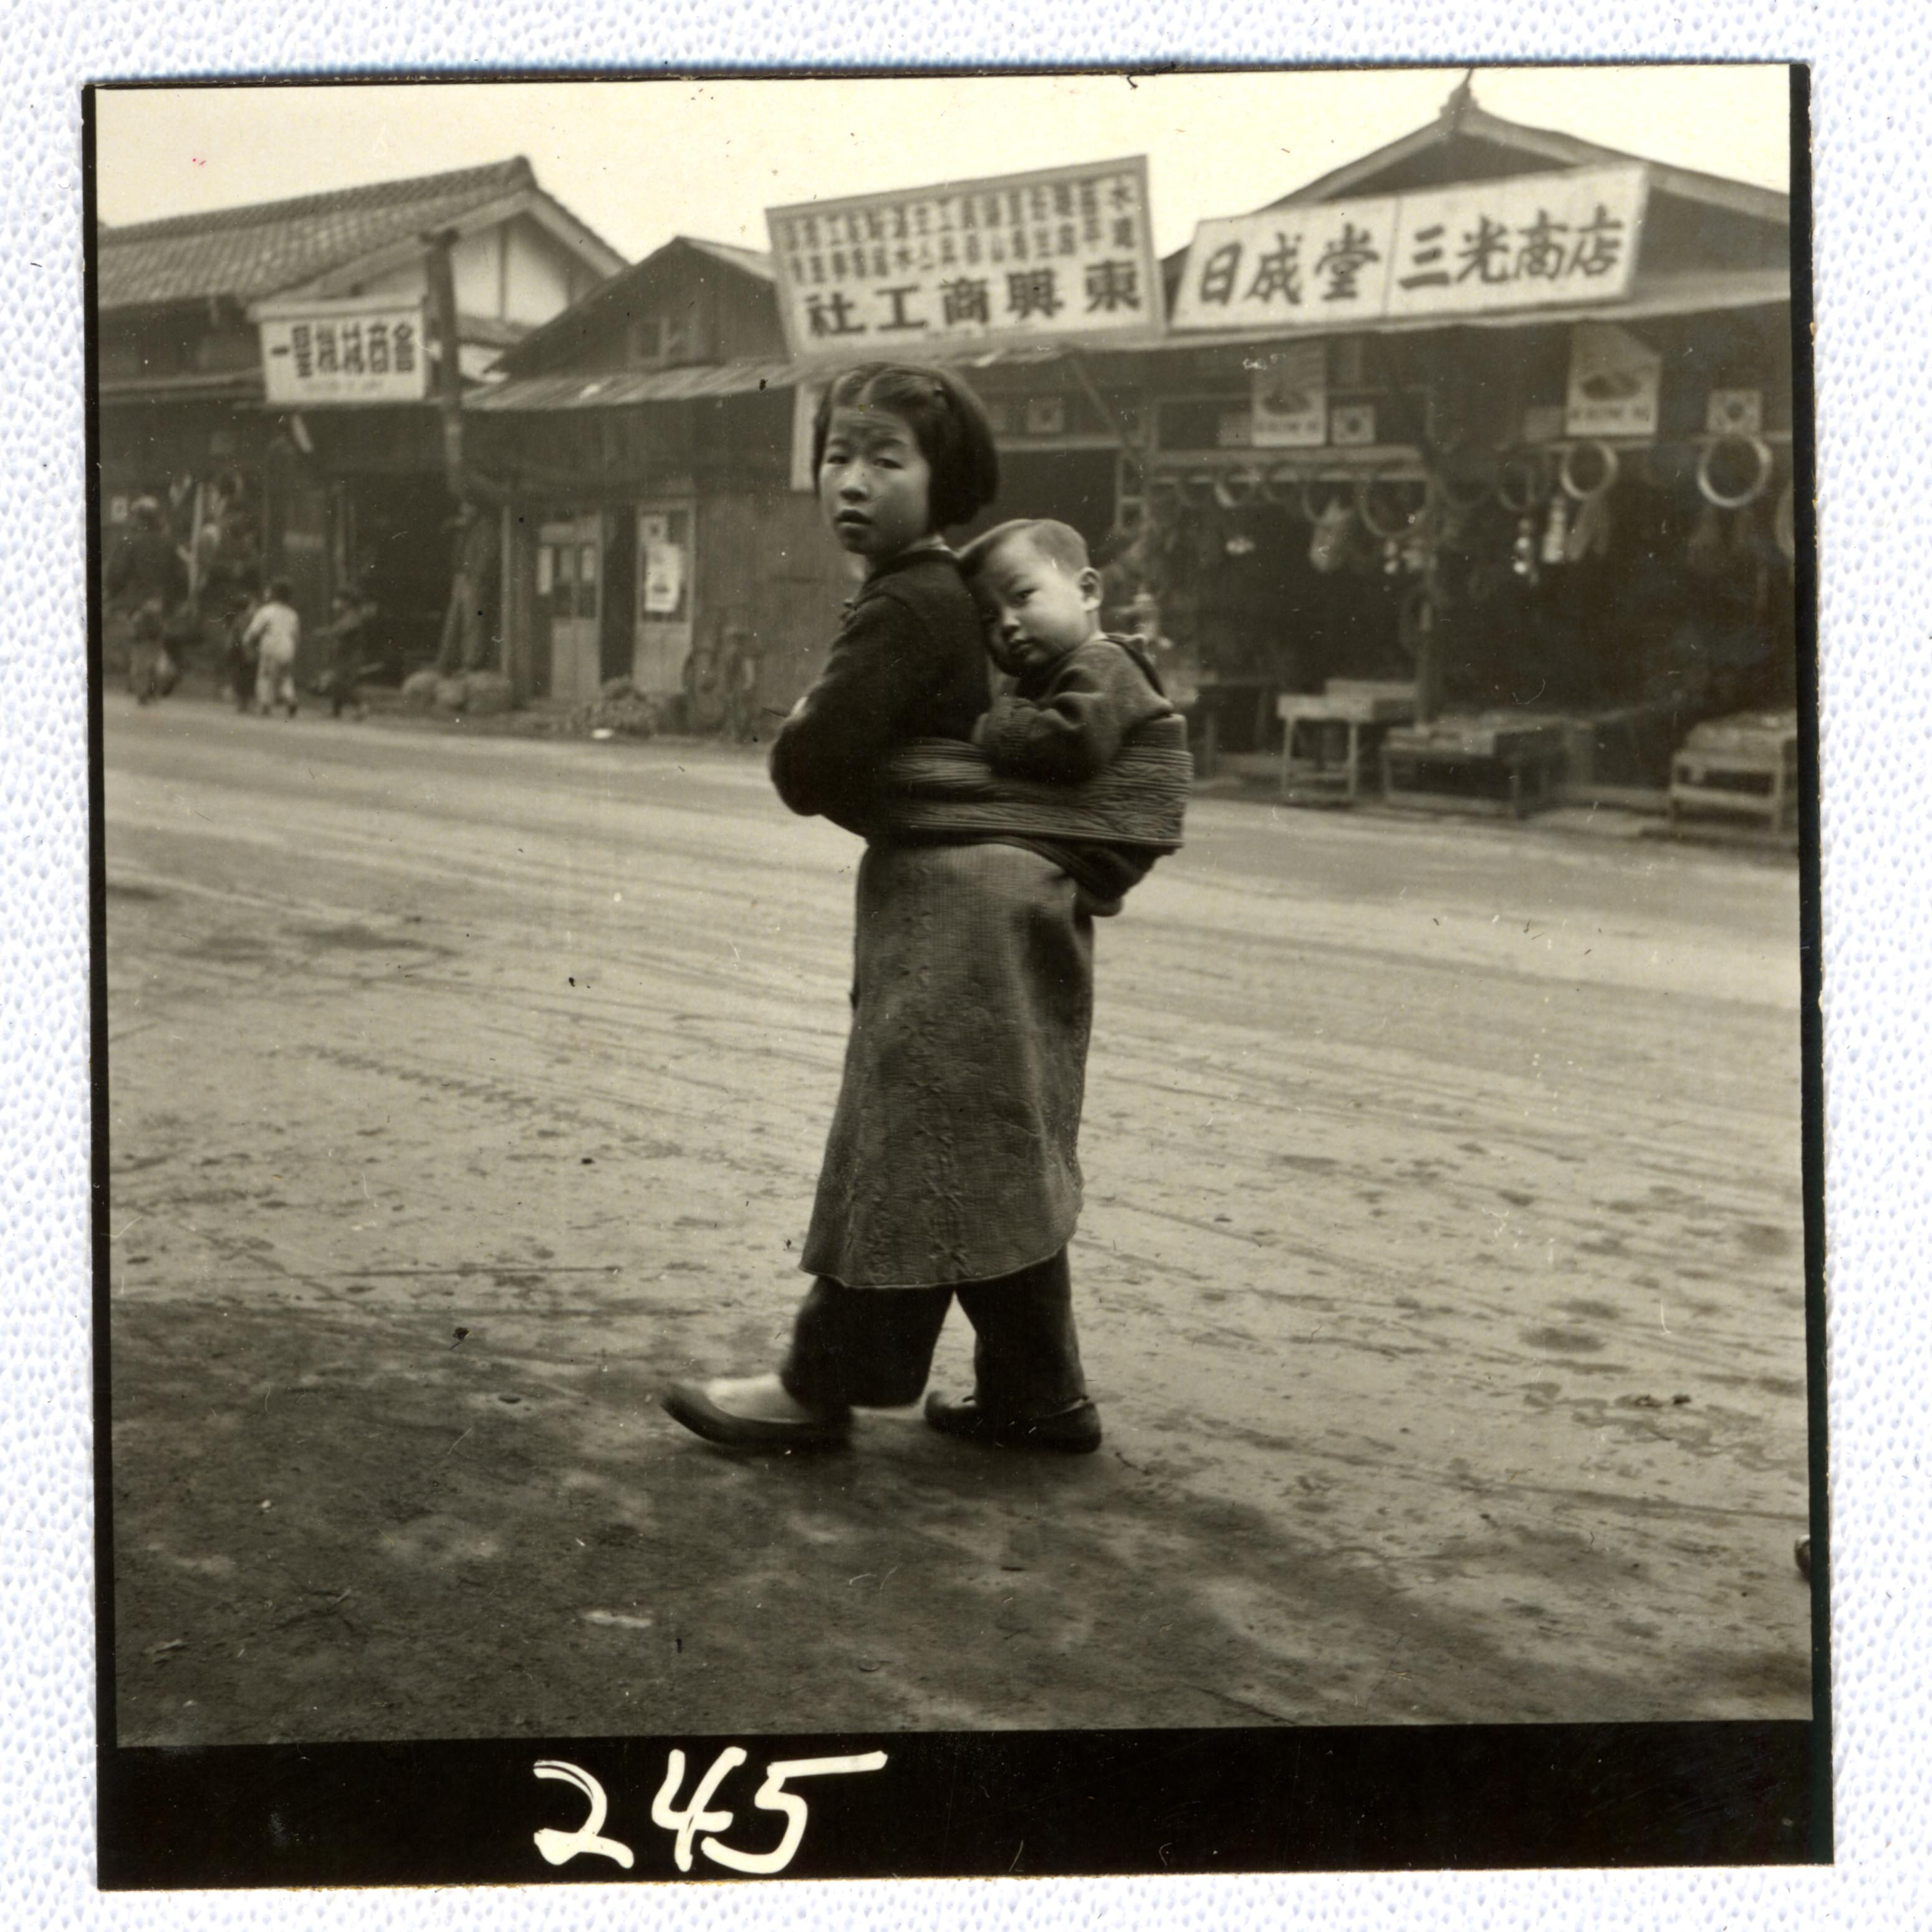 In this photo, a scene typical of any place in Korea--a young girl carrying her smaller brother in a sling tied around her waist.